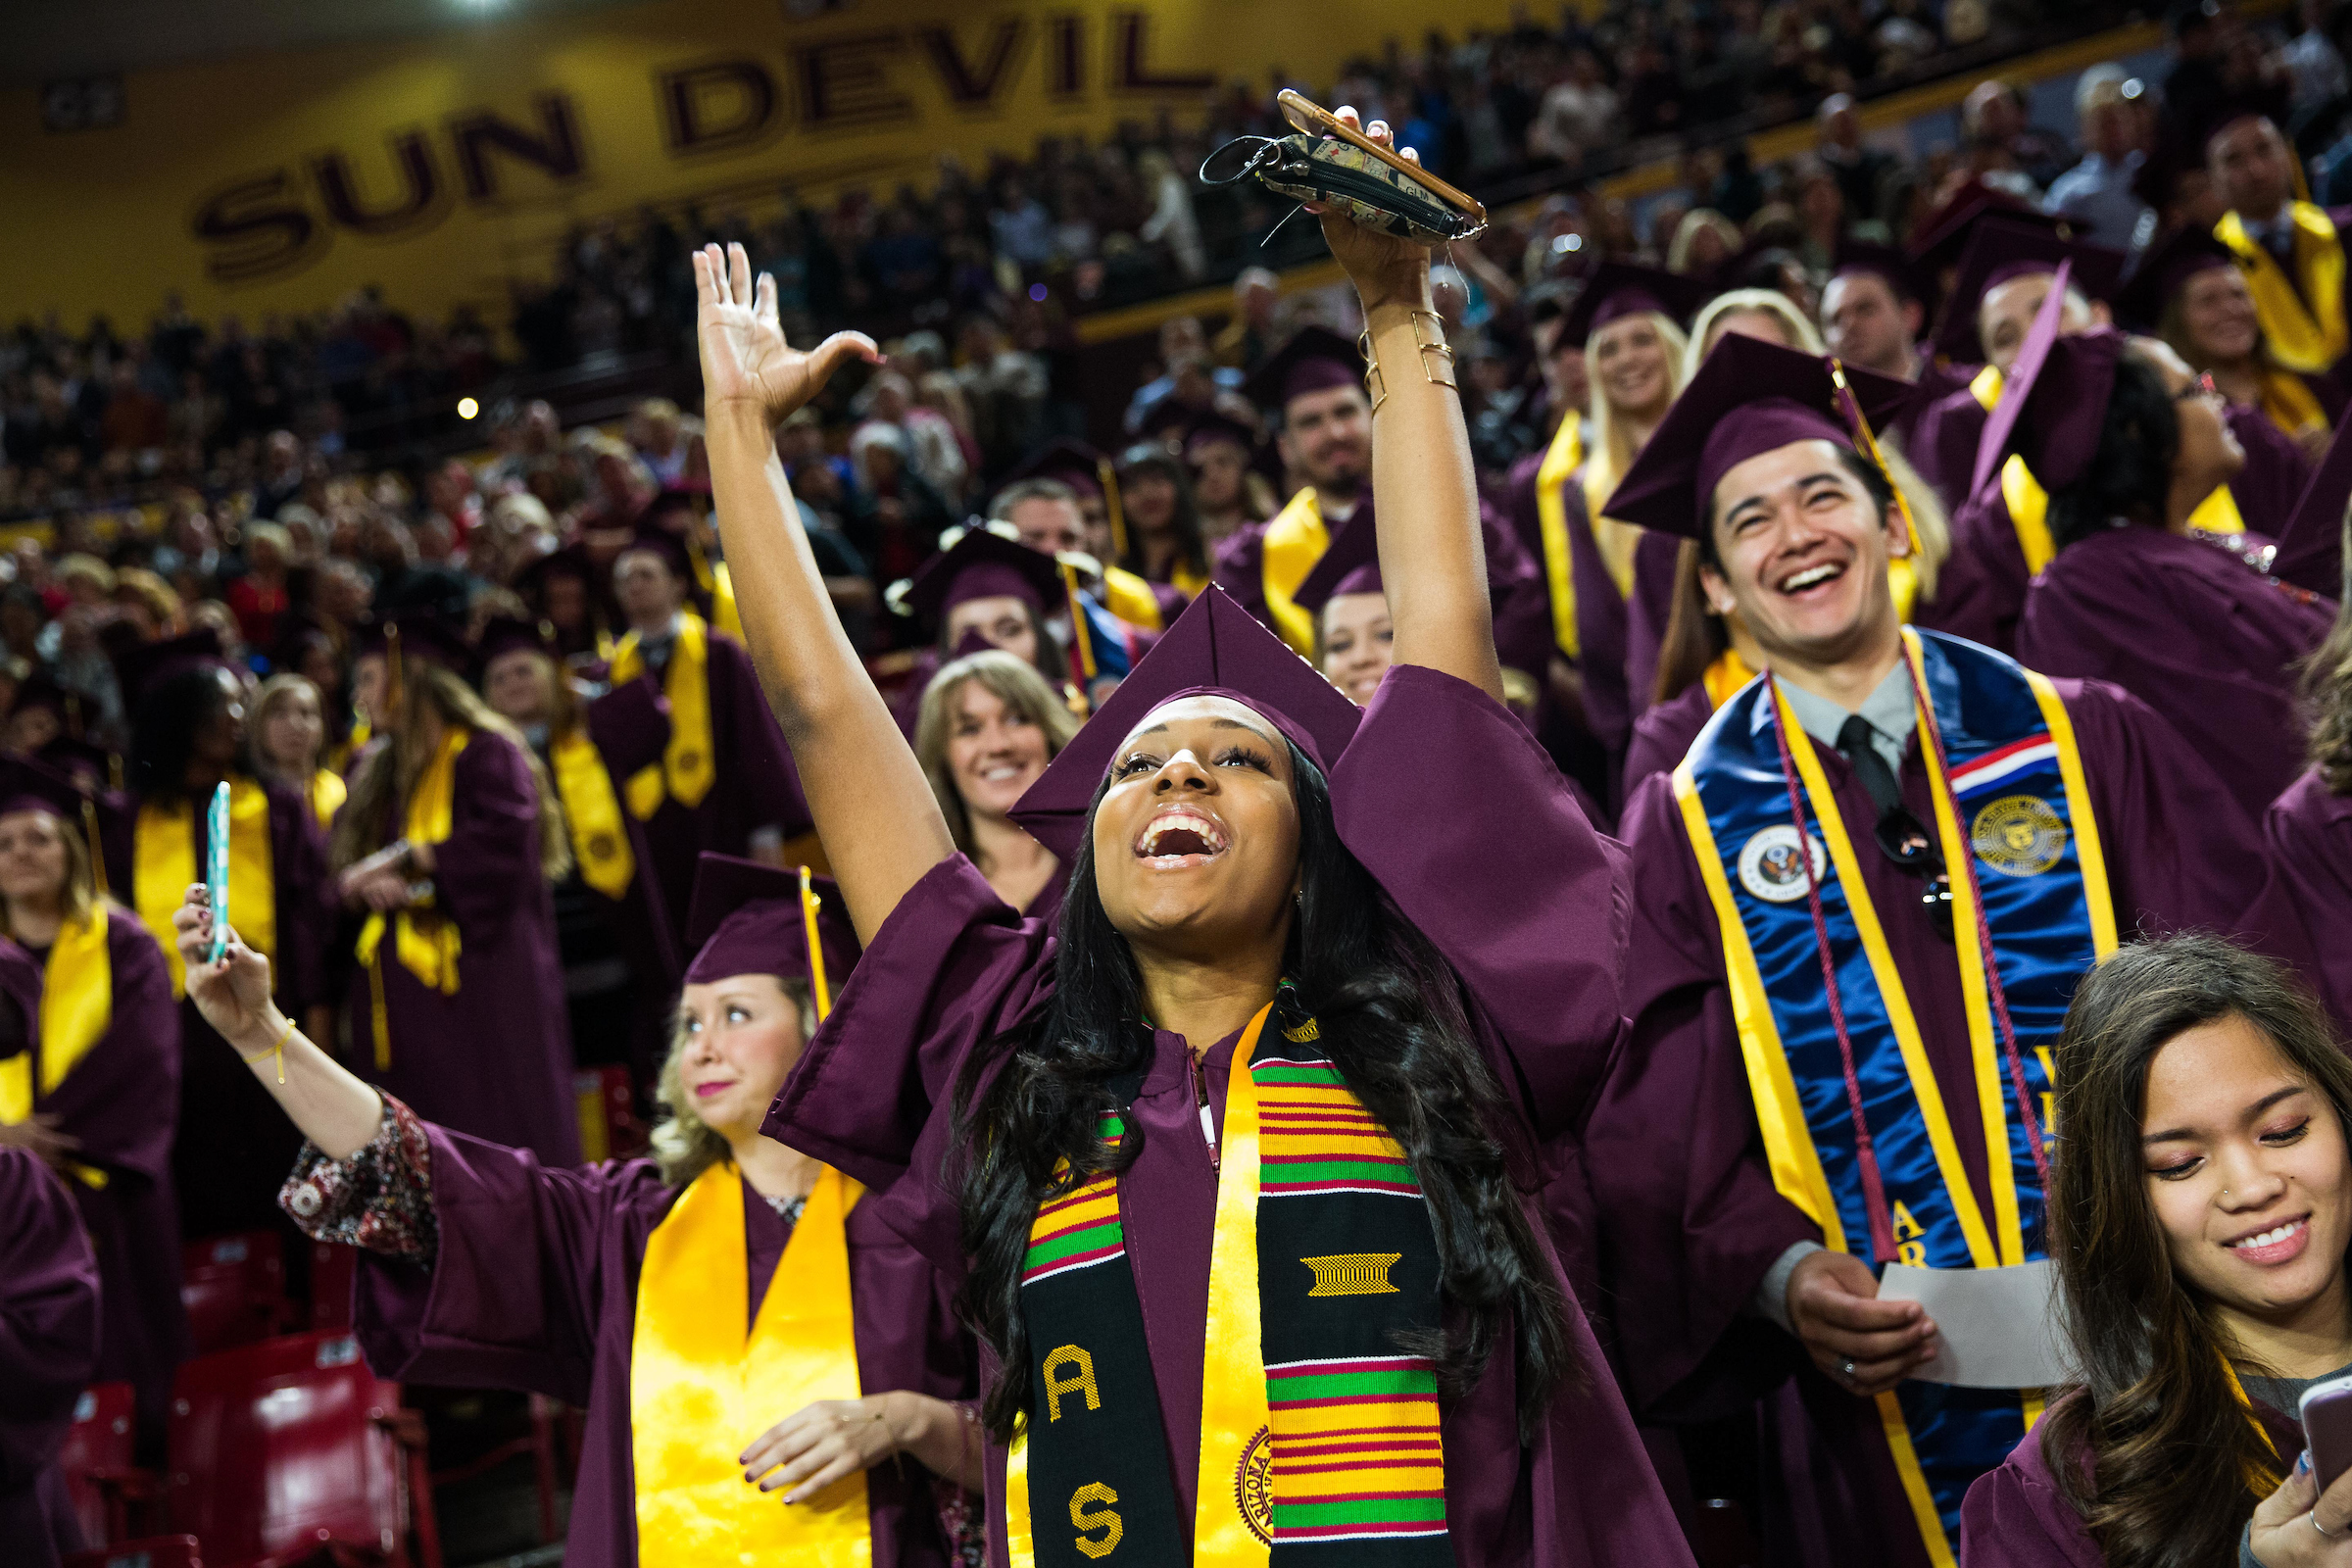 student celebrating at ASU commencement